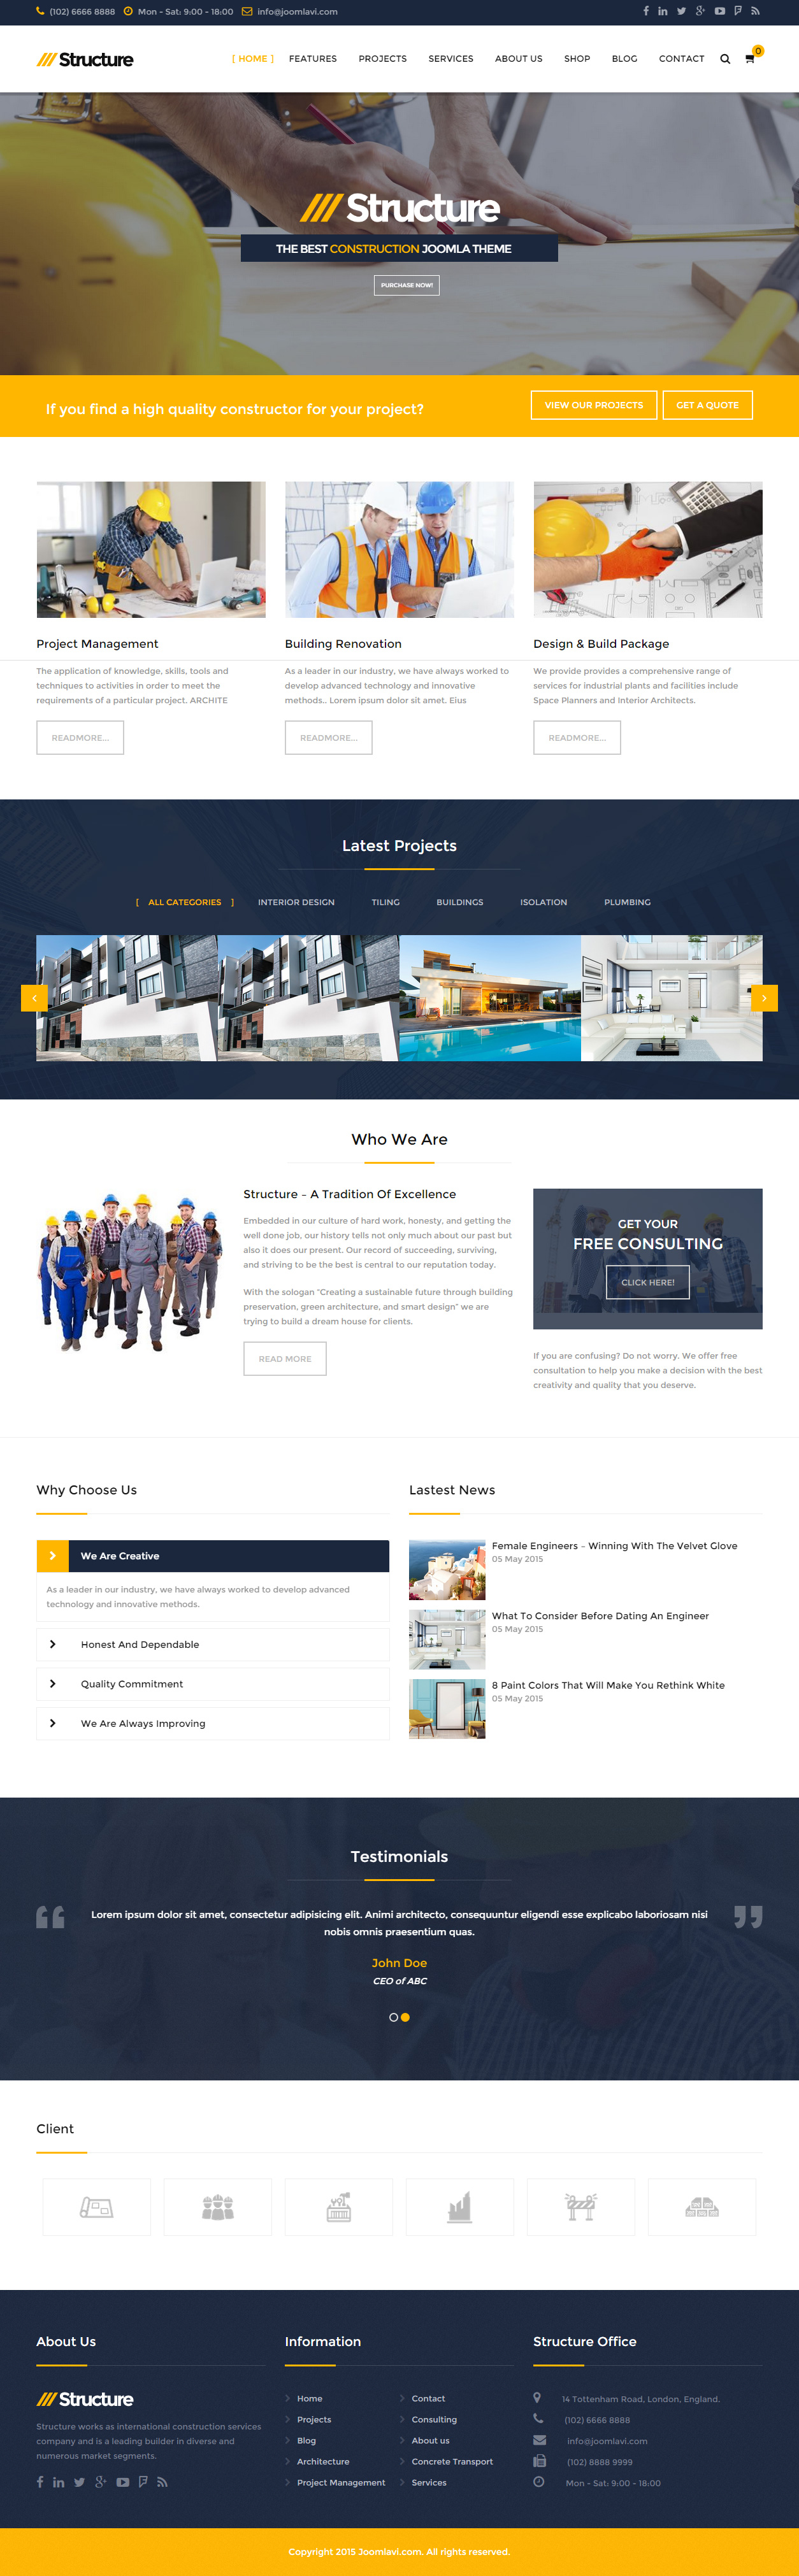 30 best joomla business templates 2017 responsive miracle structure joomla business templates accmission Choice Image